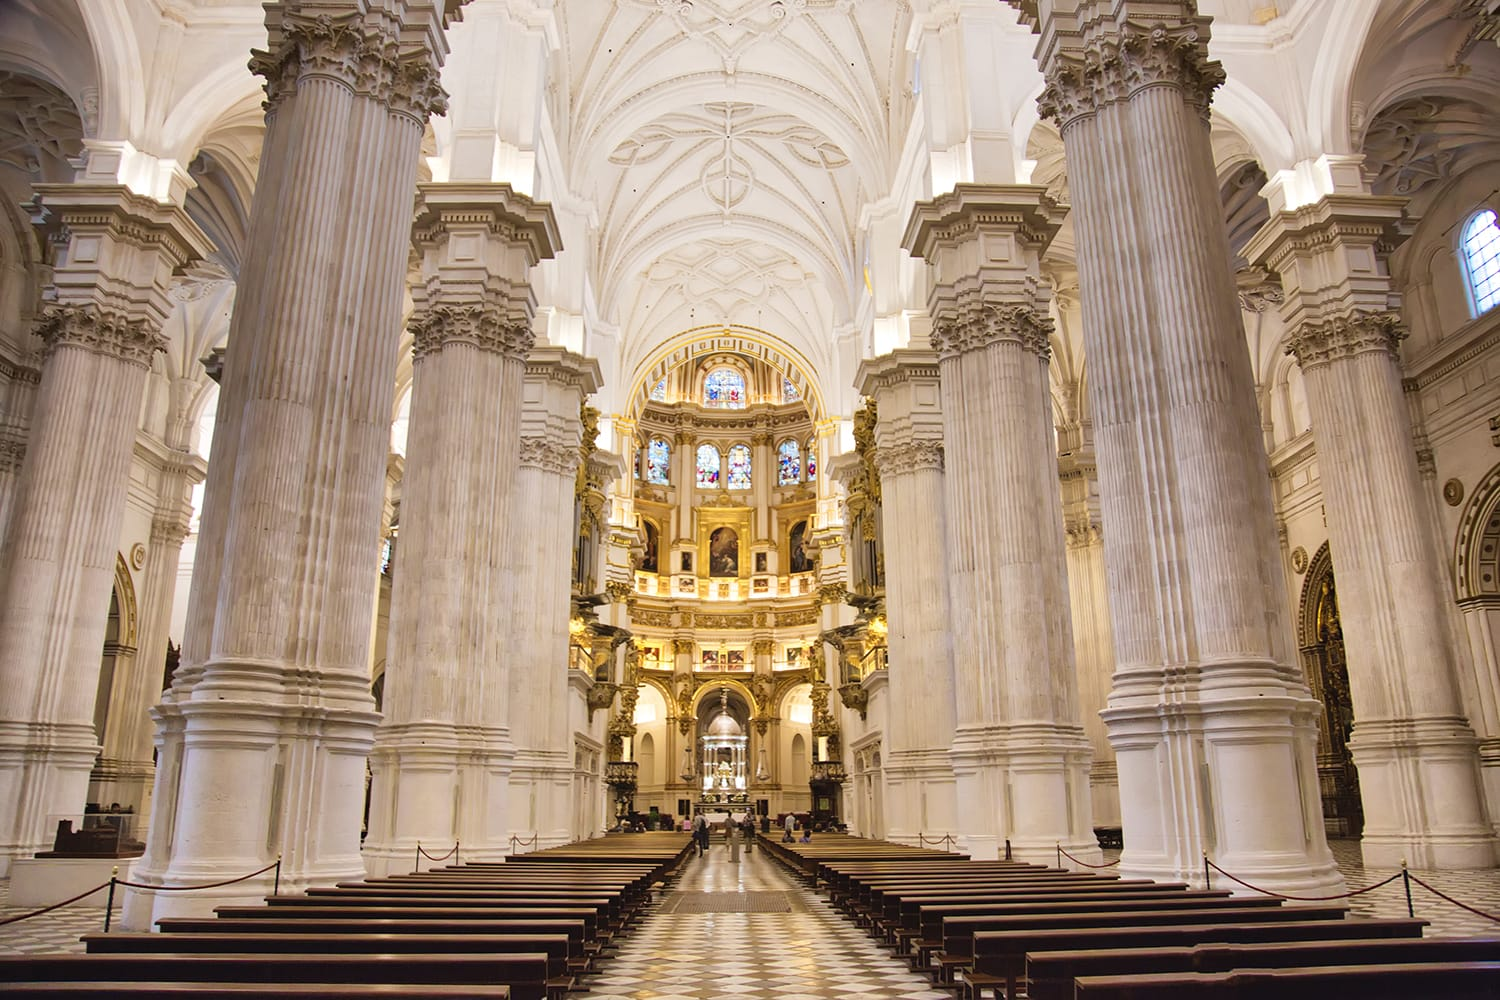 Exquisite Interiors of landmark Granada Royal Cathedral, Spain